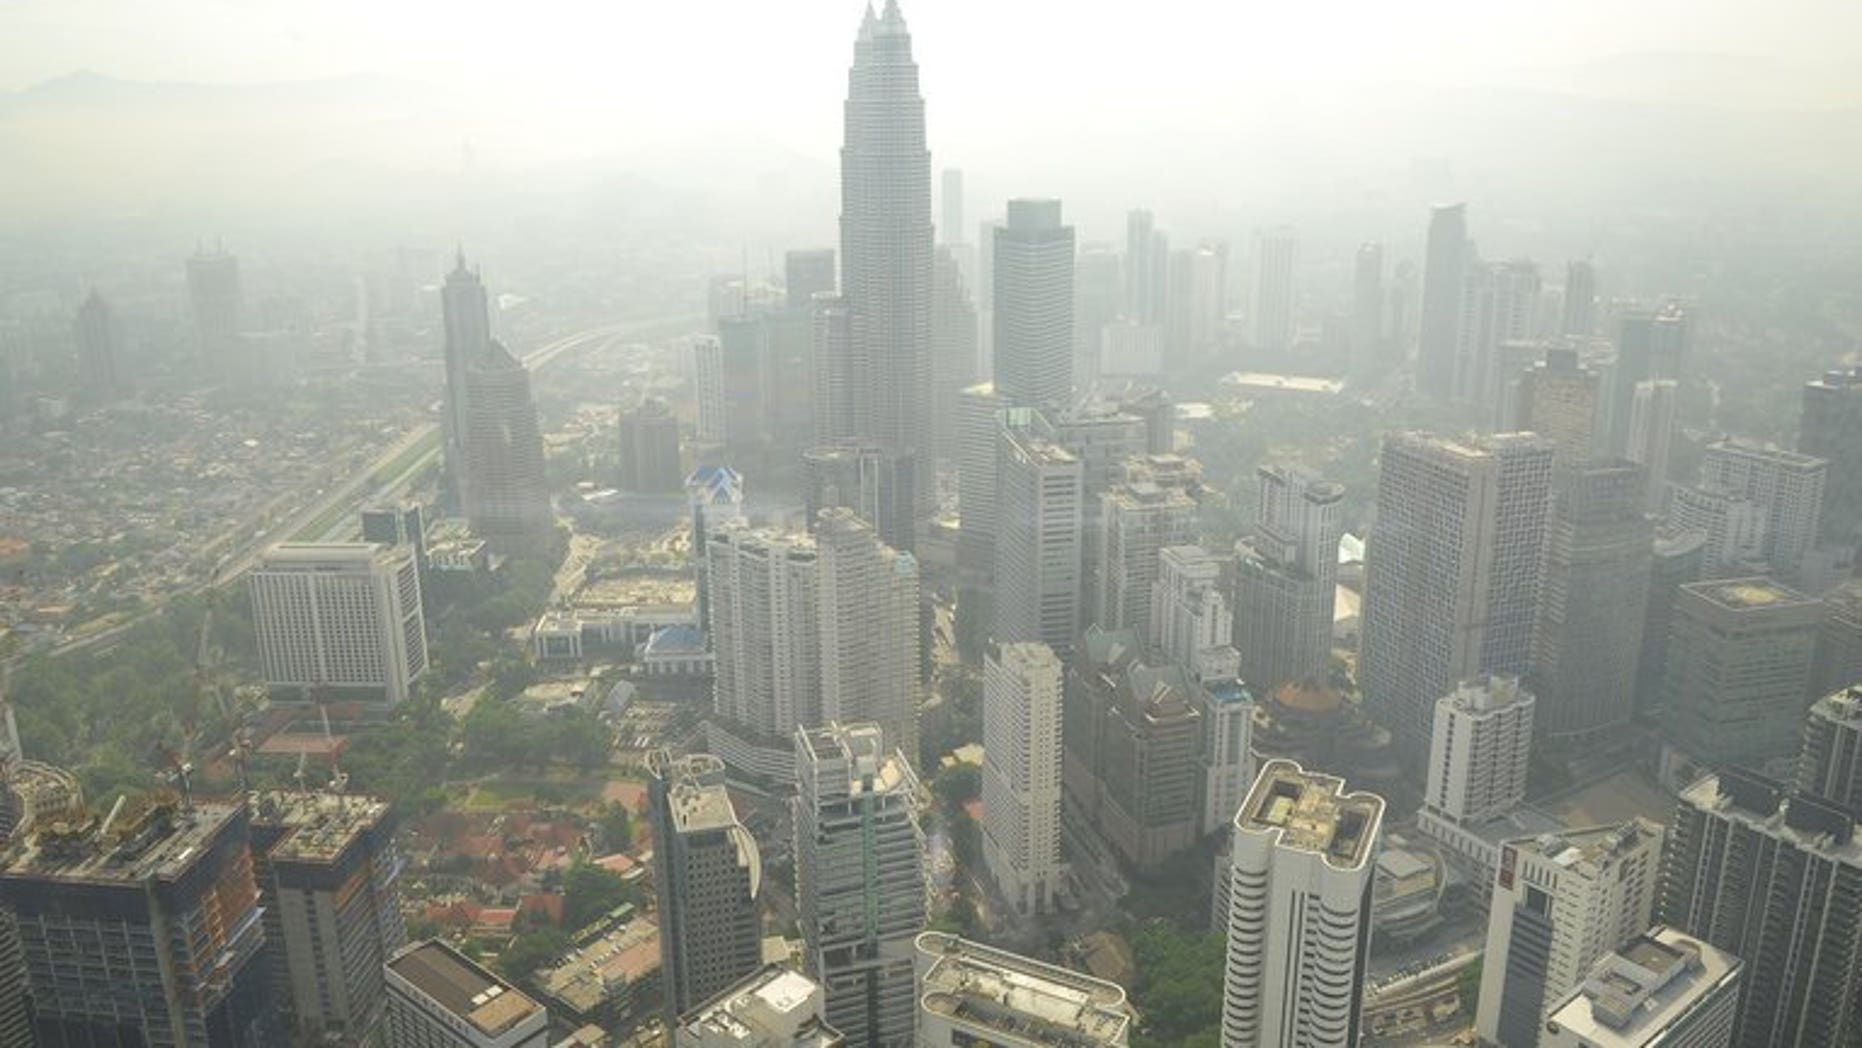 Kuala Lumpur's skyline is seen covered by haze on June 27, 2013. Southeast Asian nations gathering to discuss the annual shroud of hazardous smog that blights the region are unlikely to find any immediate solutions, despite a meeting to address the issue being brought forward by a month to Monday.